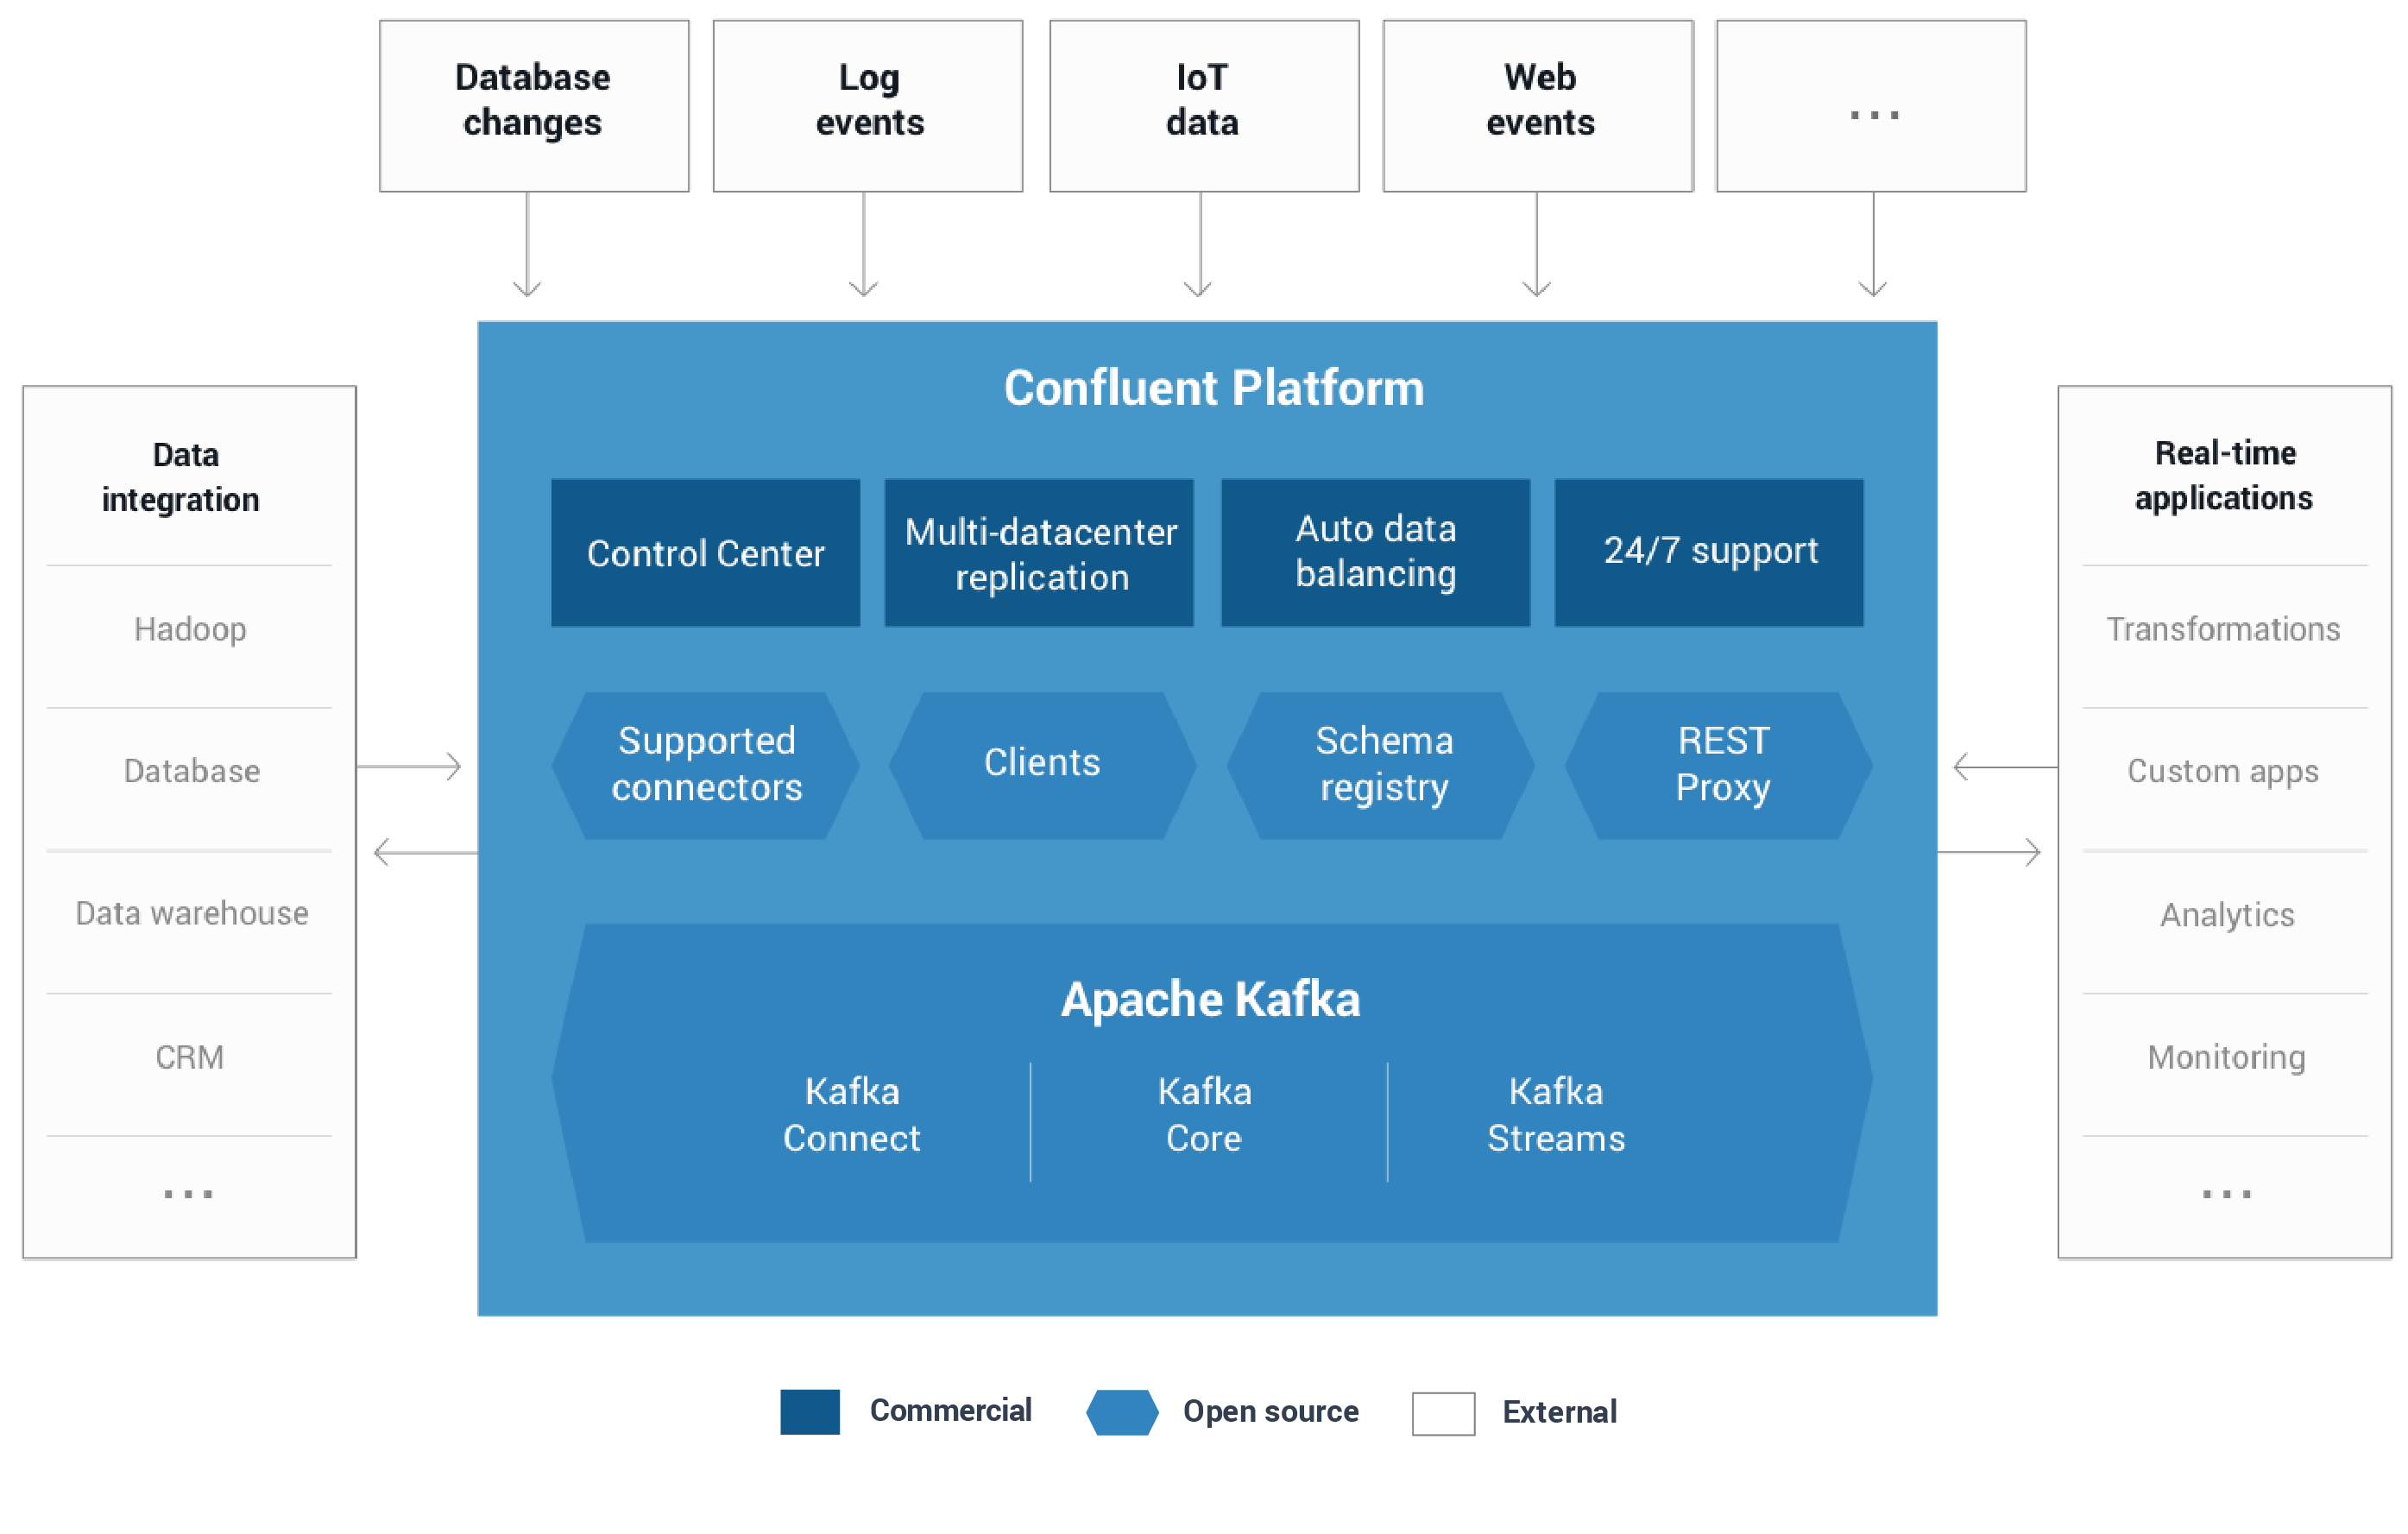 Announcing Confluent 3.1 with Apache Kafka 0.10.1.0